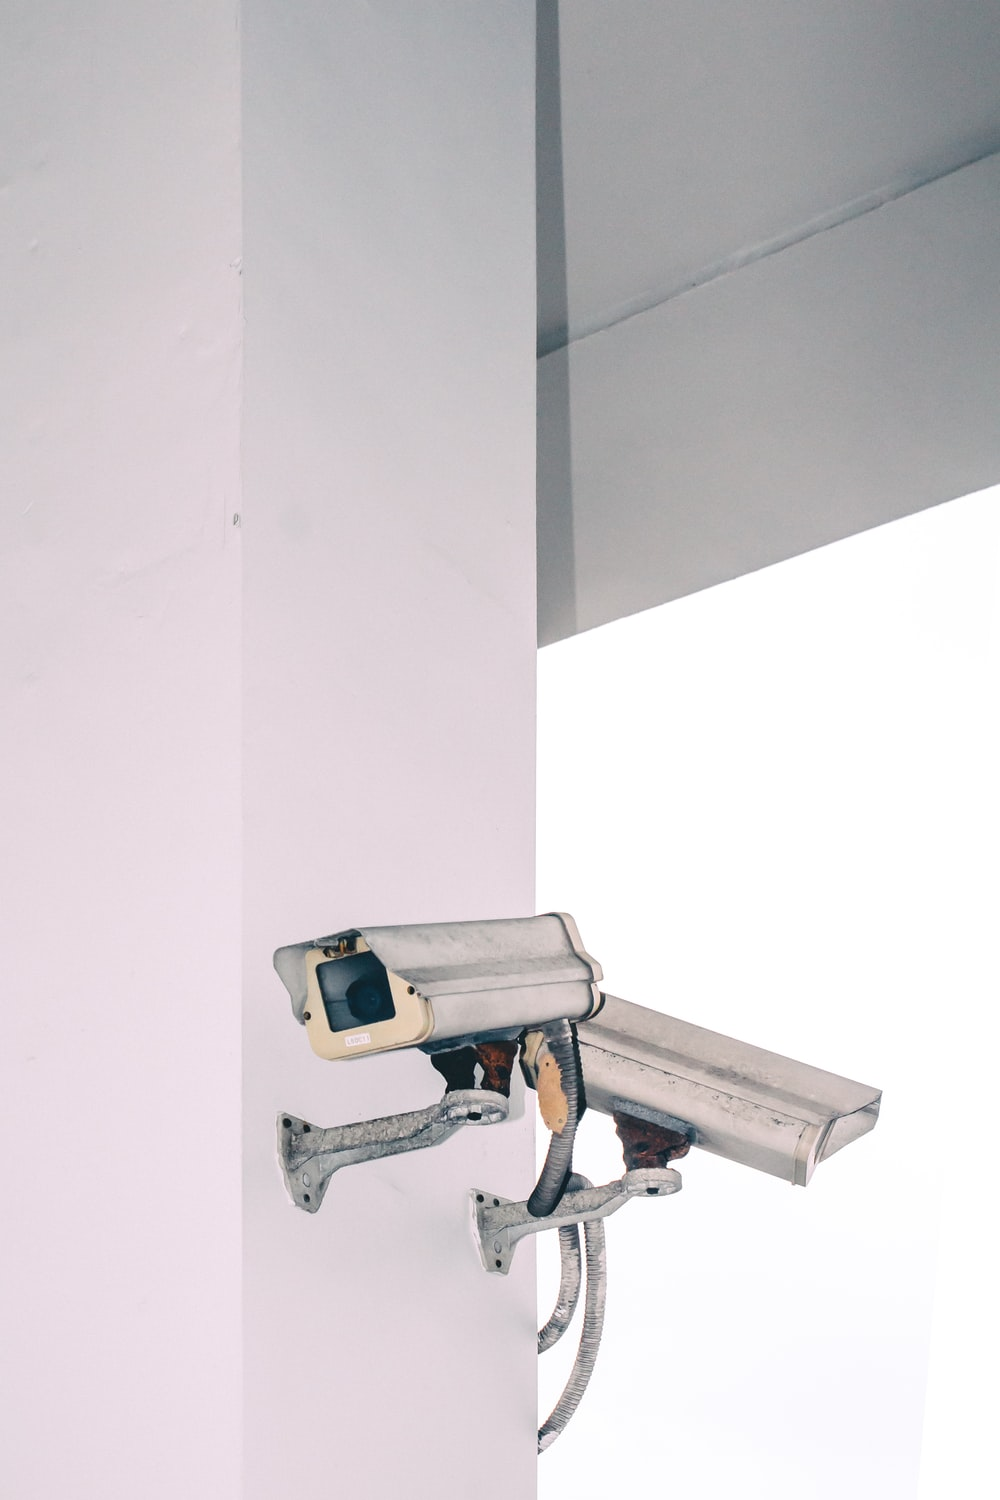 two bullet security camera attached on wall